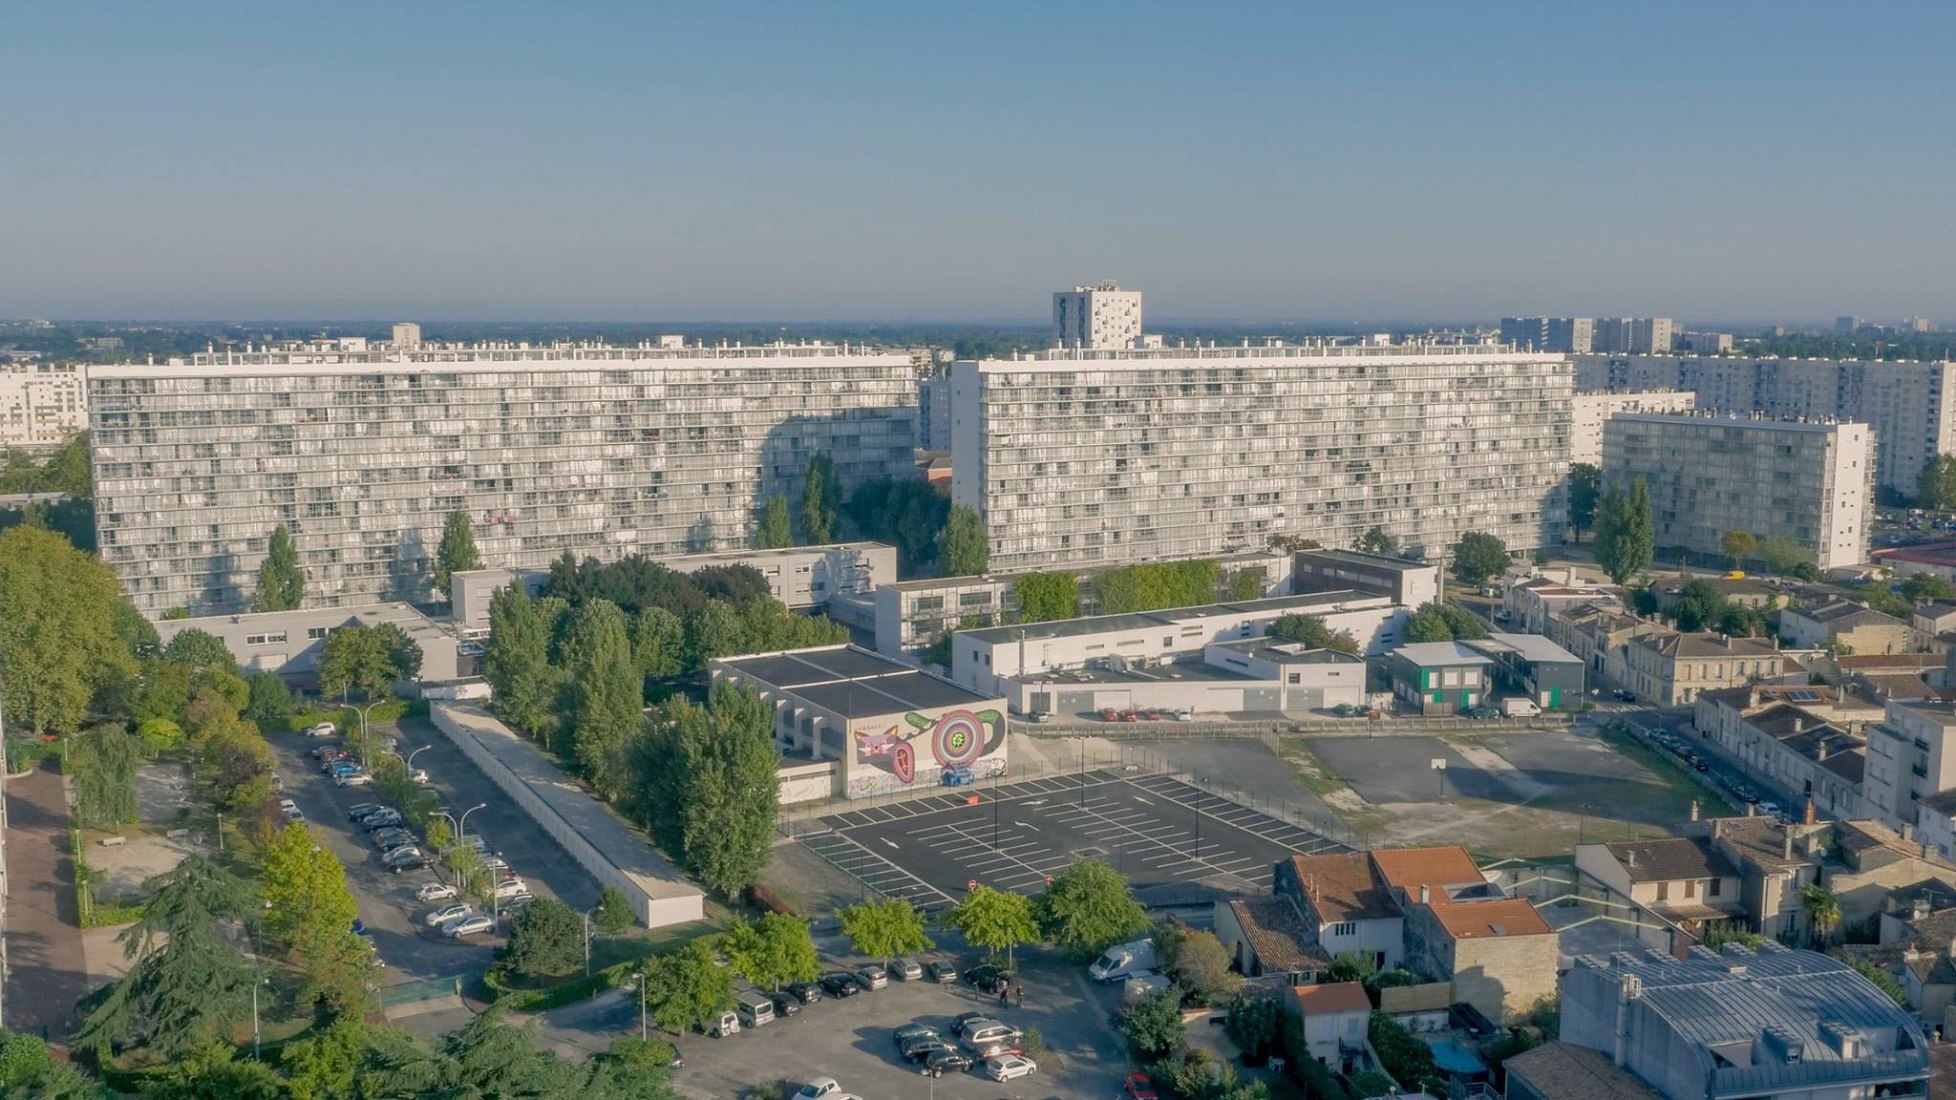 Transformation of 530 dwellings, block G, H, I, Bordeaux, by Lacaton & Vassal with Frédéric Druot and Christophe Hutin. Photograph © Aquitanis